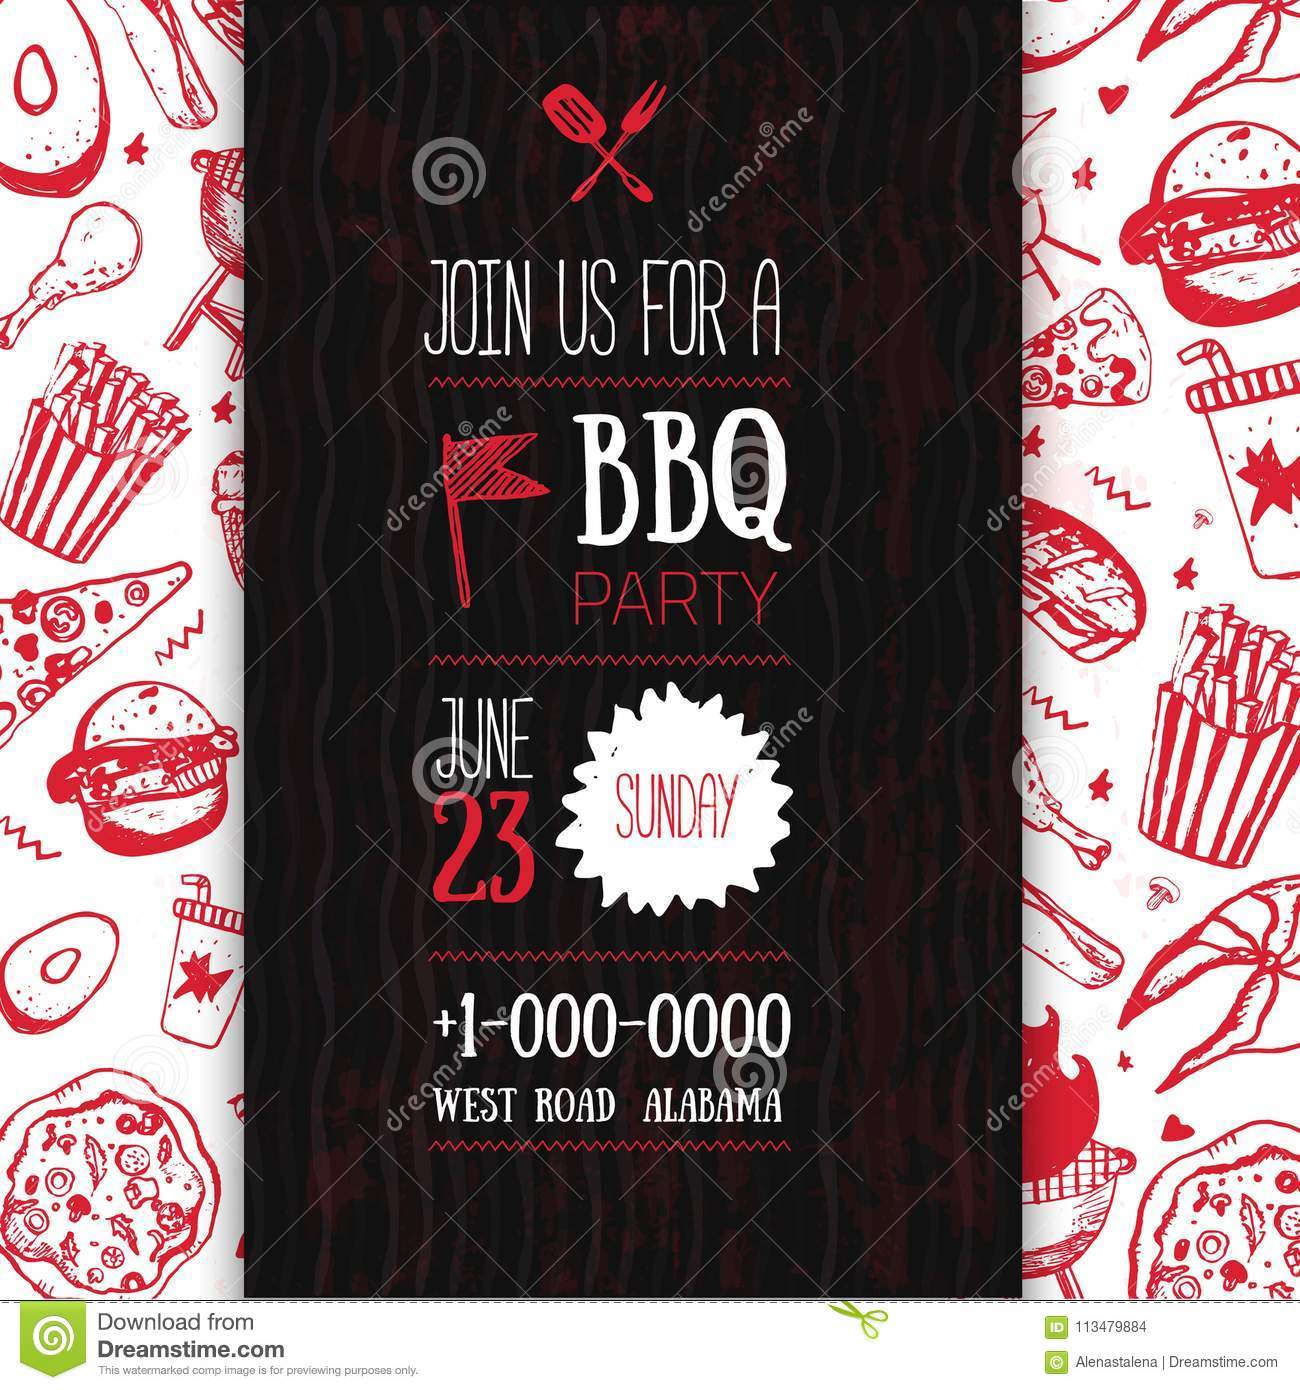 Barbecue Flyer Template For Your Party With Grunge Icons And Frame Bbq Vintage Grill Background Stock Vector Illustration Of Outdoor Party 113479884